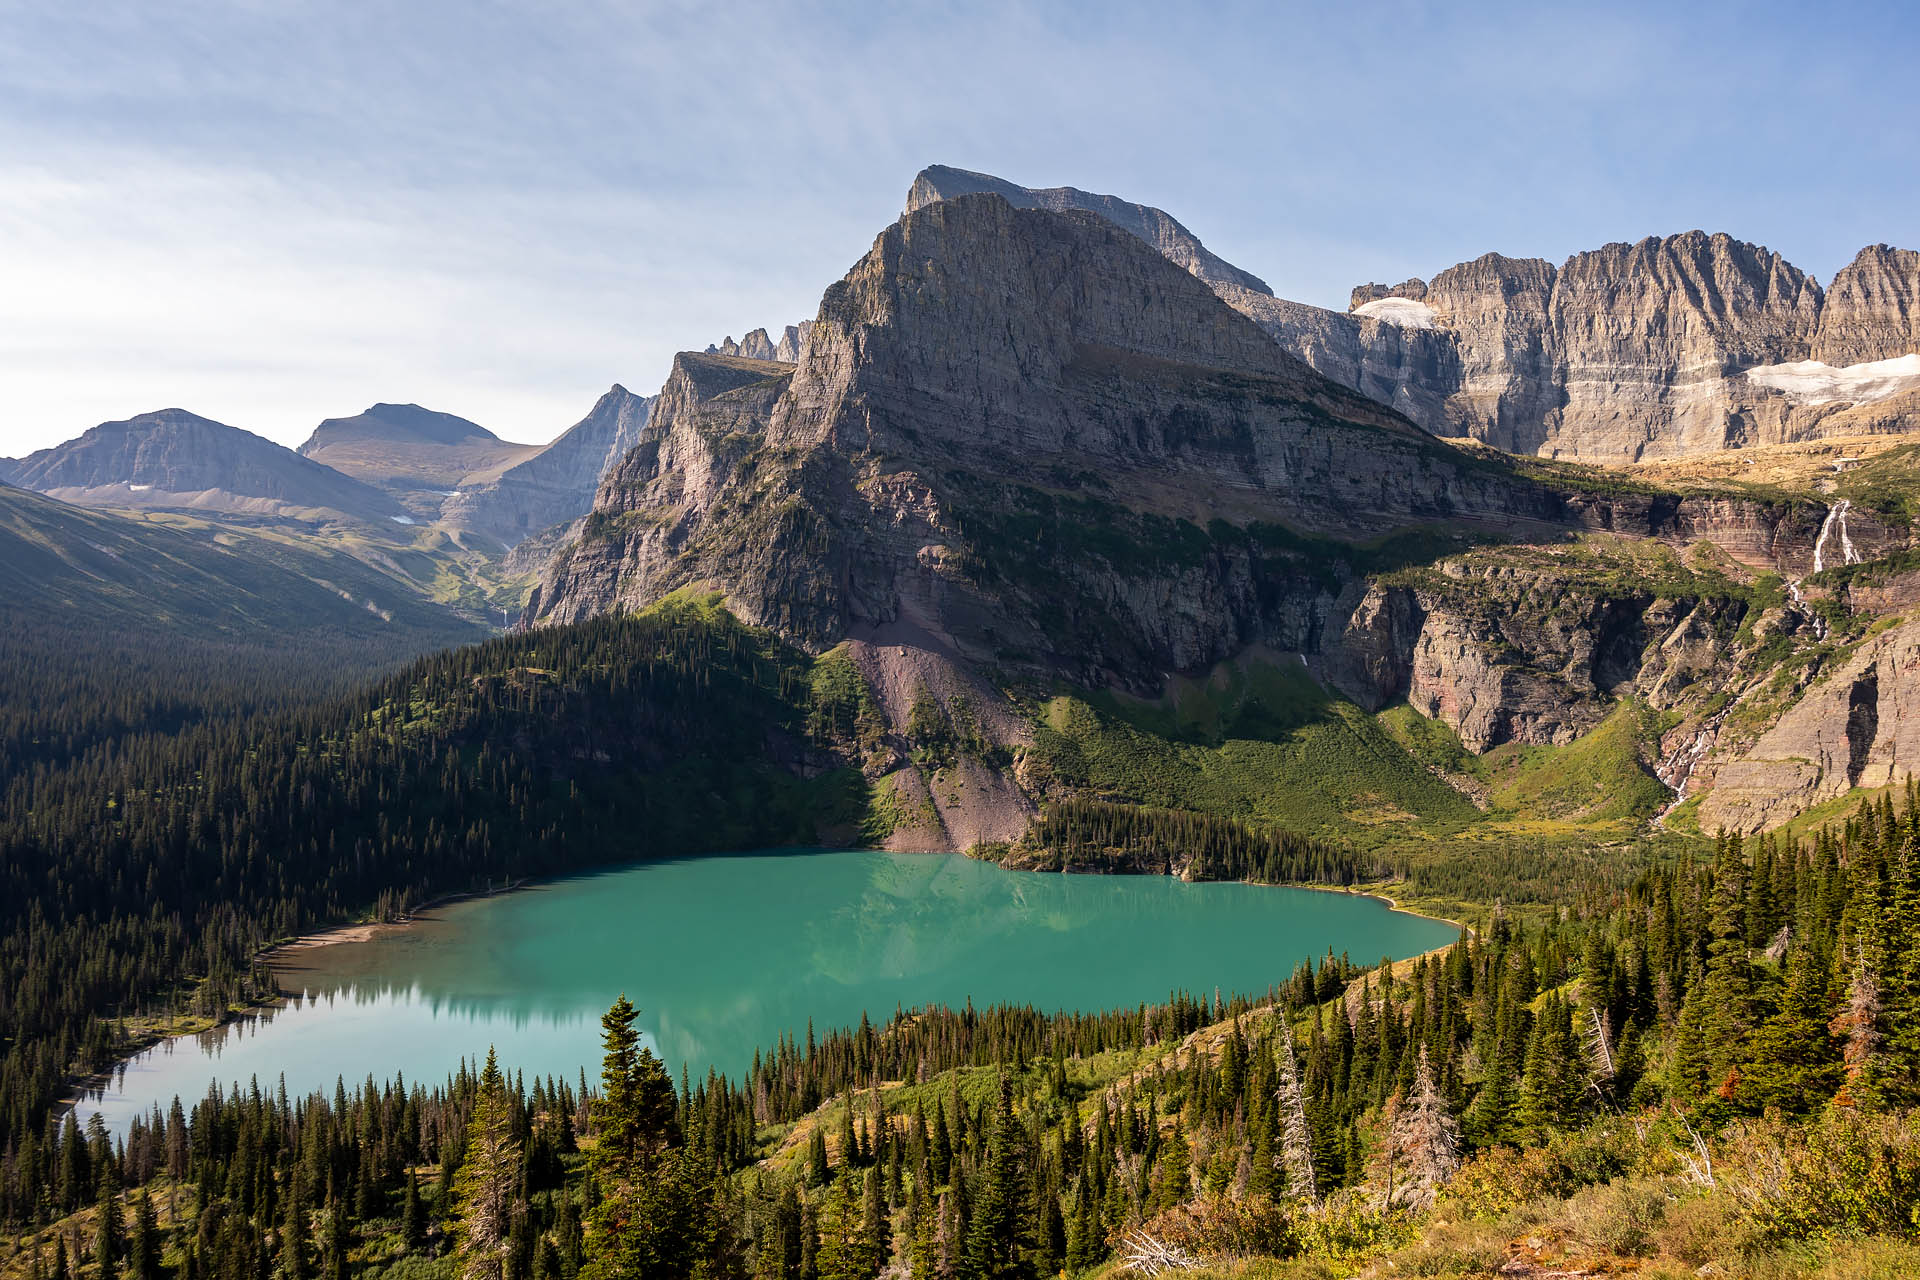 Grinnell Lake, Angel Wing, Grinnell Falls